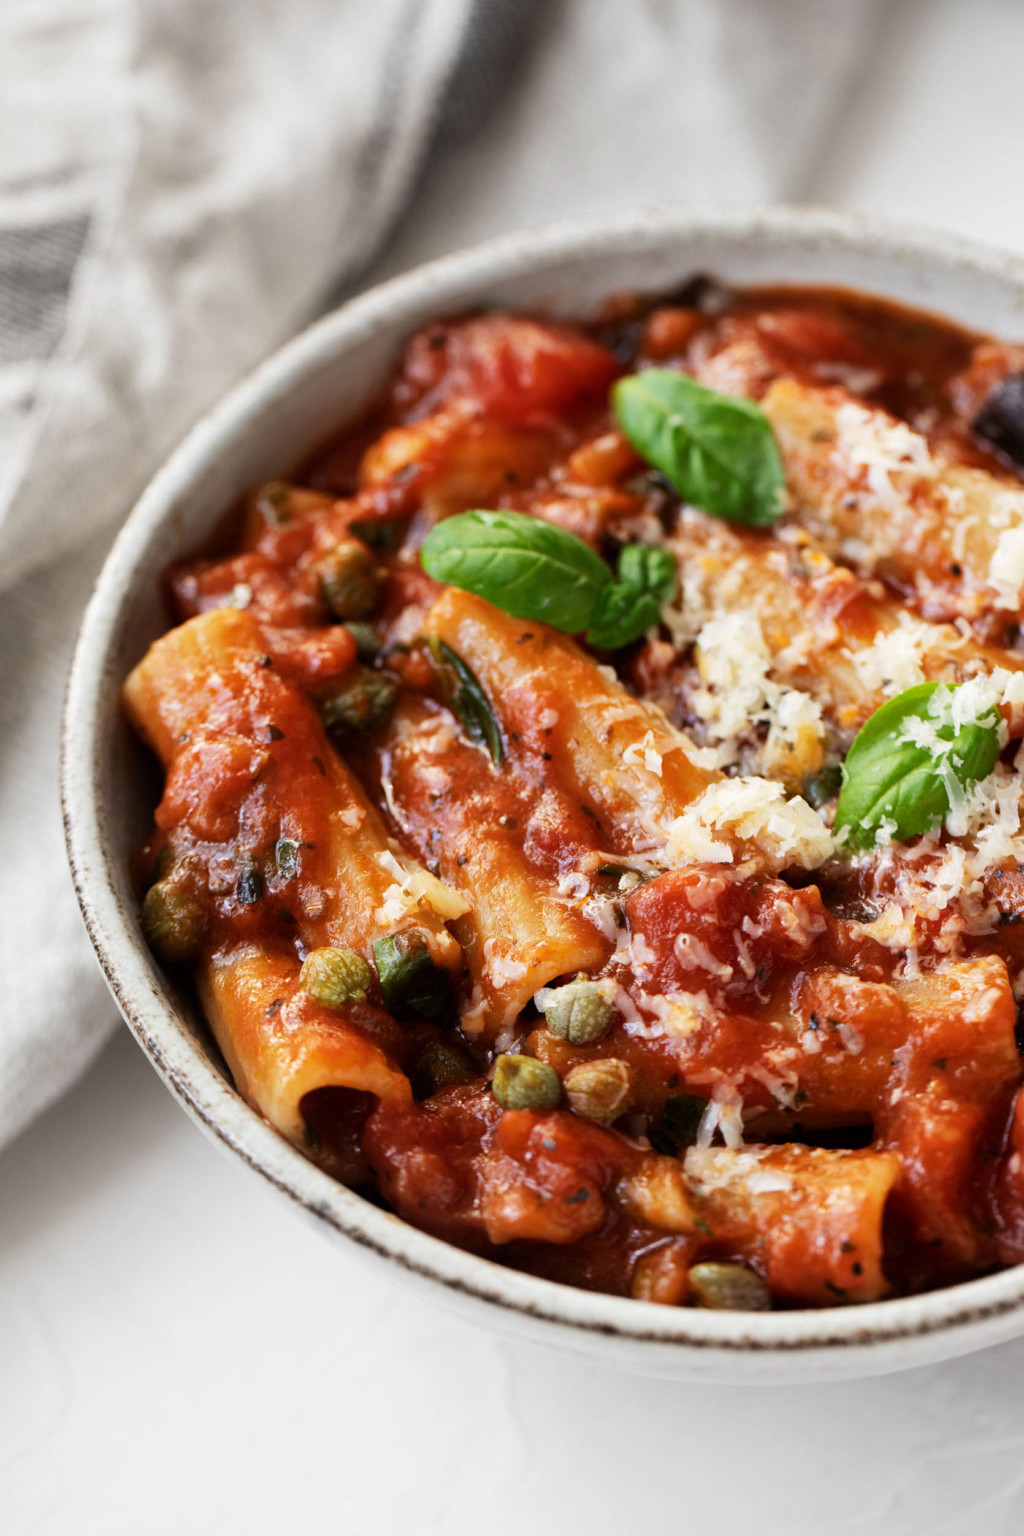 A angled photograph of a tomato and eggplant based pasta dish, which has been prepared with rigatoni and topped with small basil leaves.